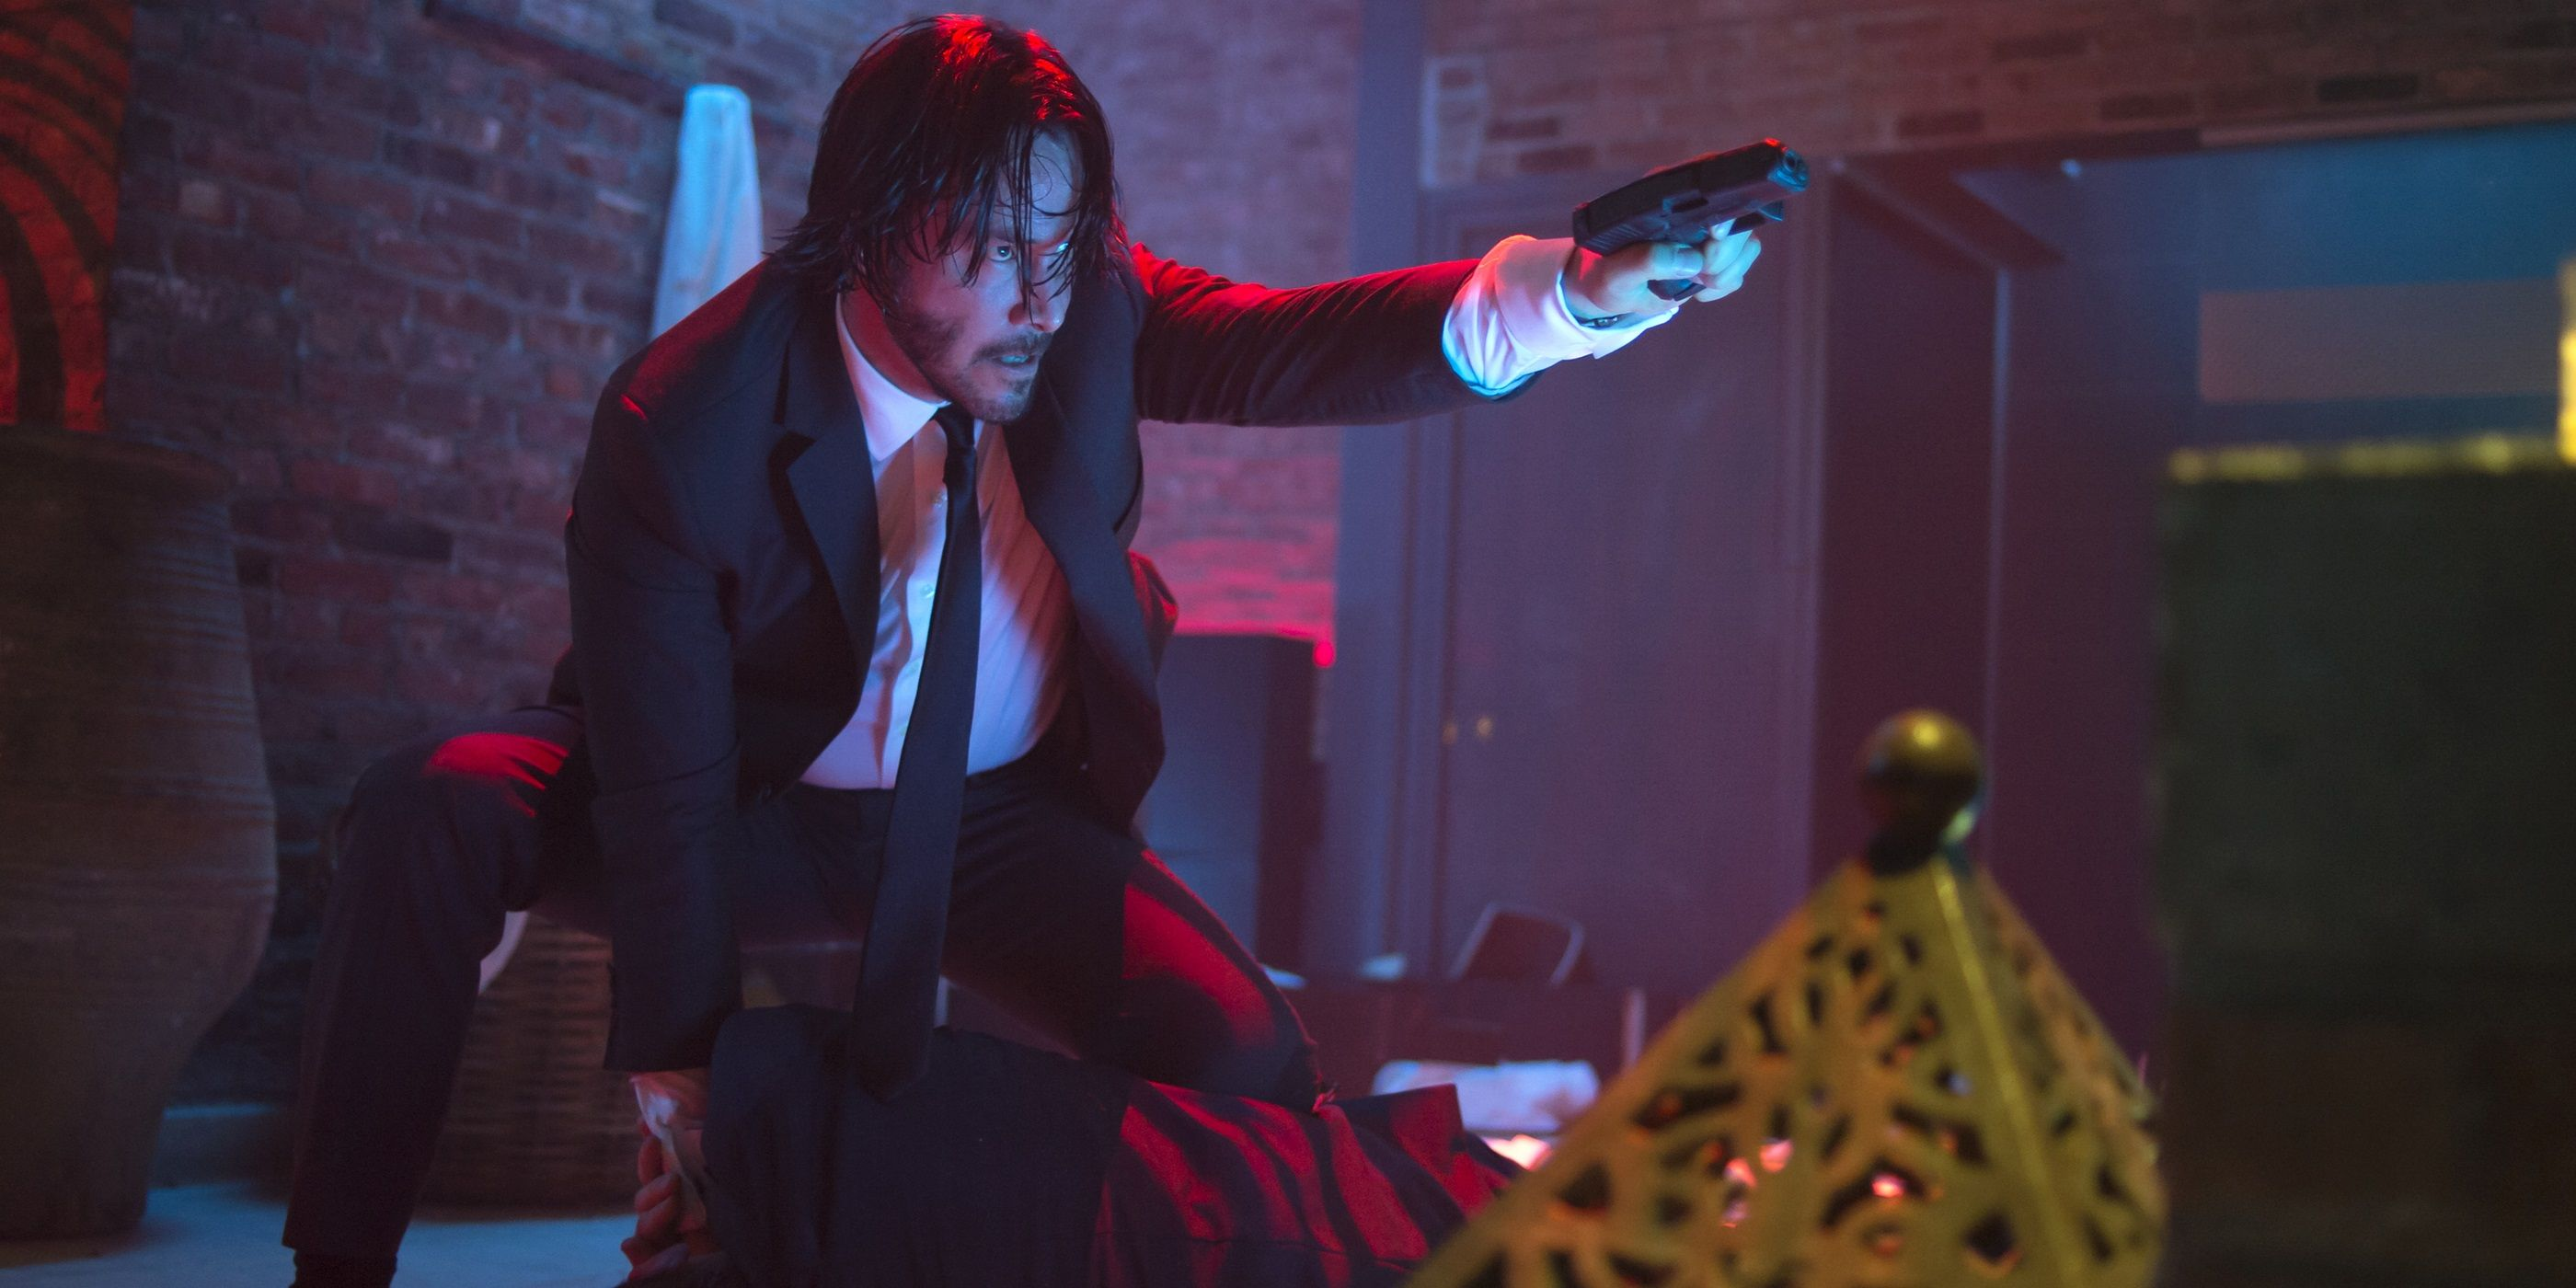 These Are The Secret Ingredients That Make John Wick So Special